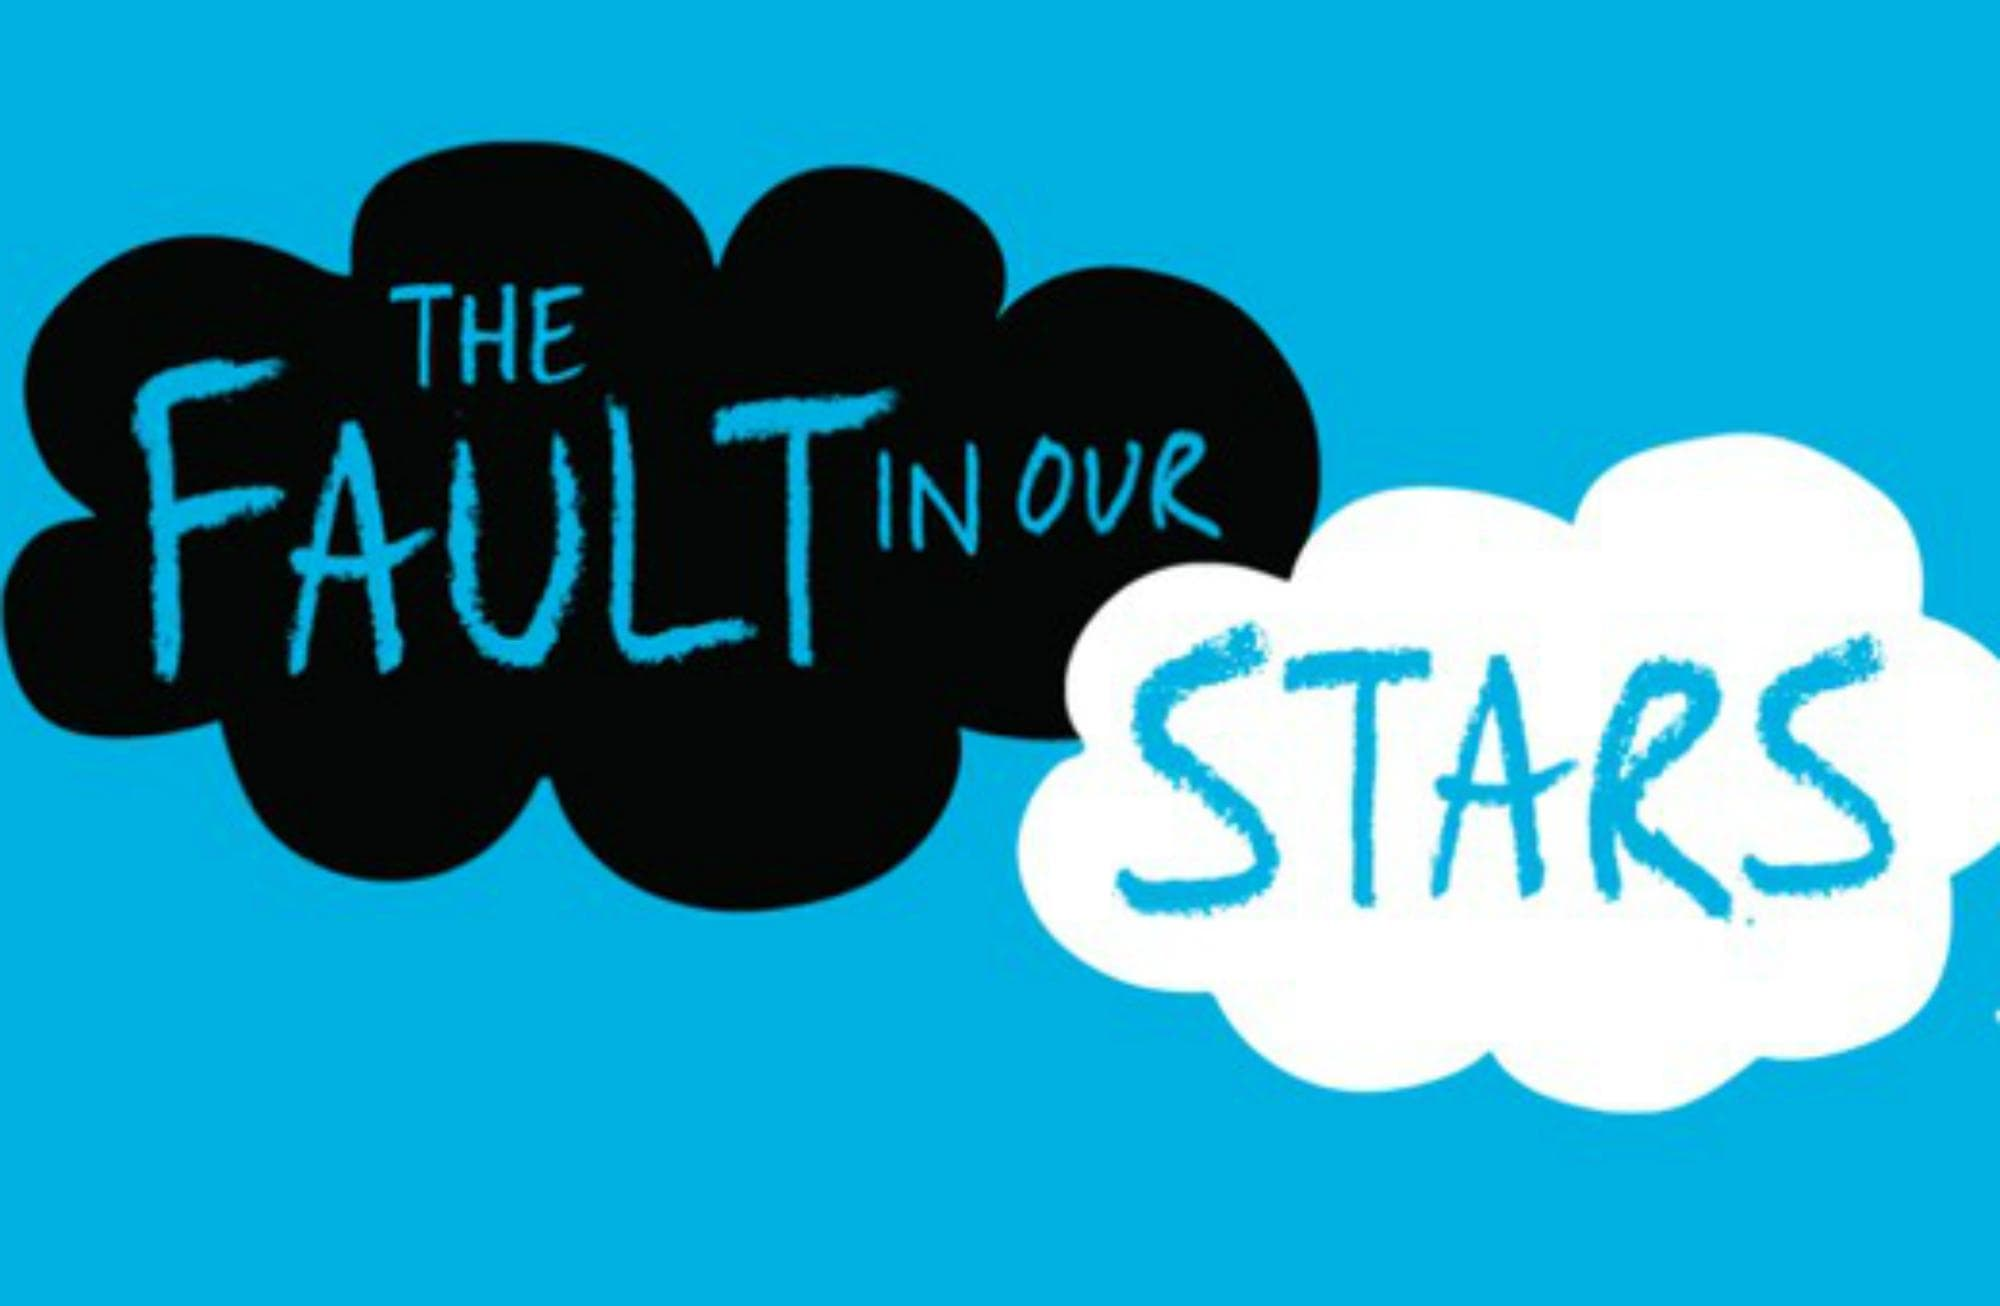 The Fault in Our Stars HQ wallpapers